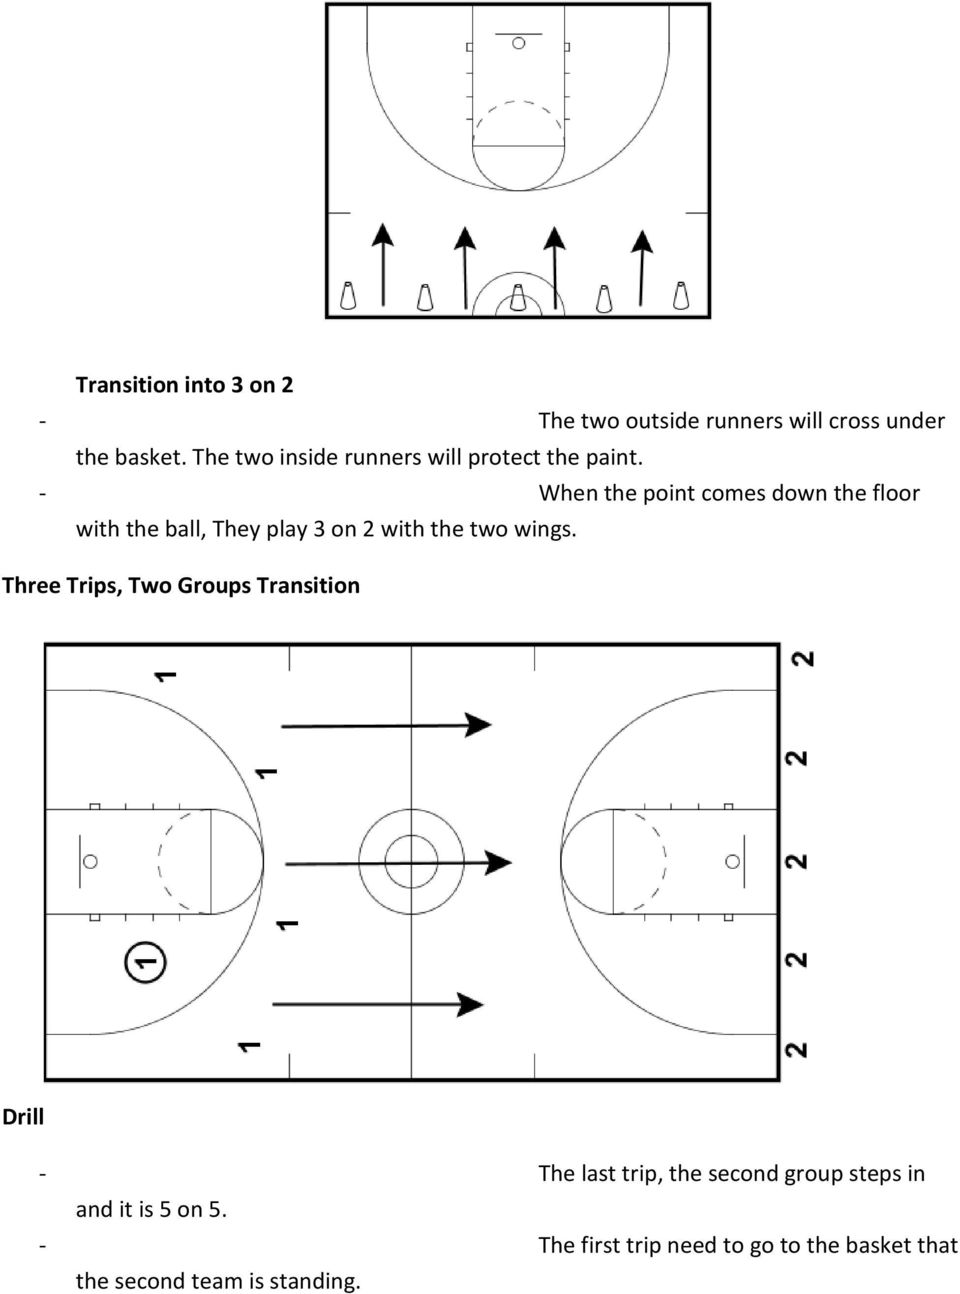 - When the point comes down the floor with the ball, They play 3 on 2 with the two wings.